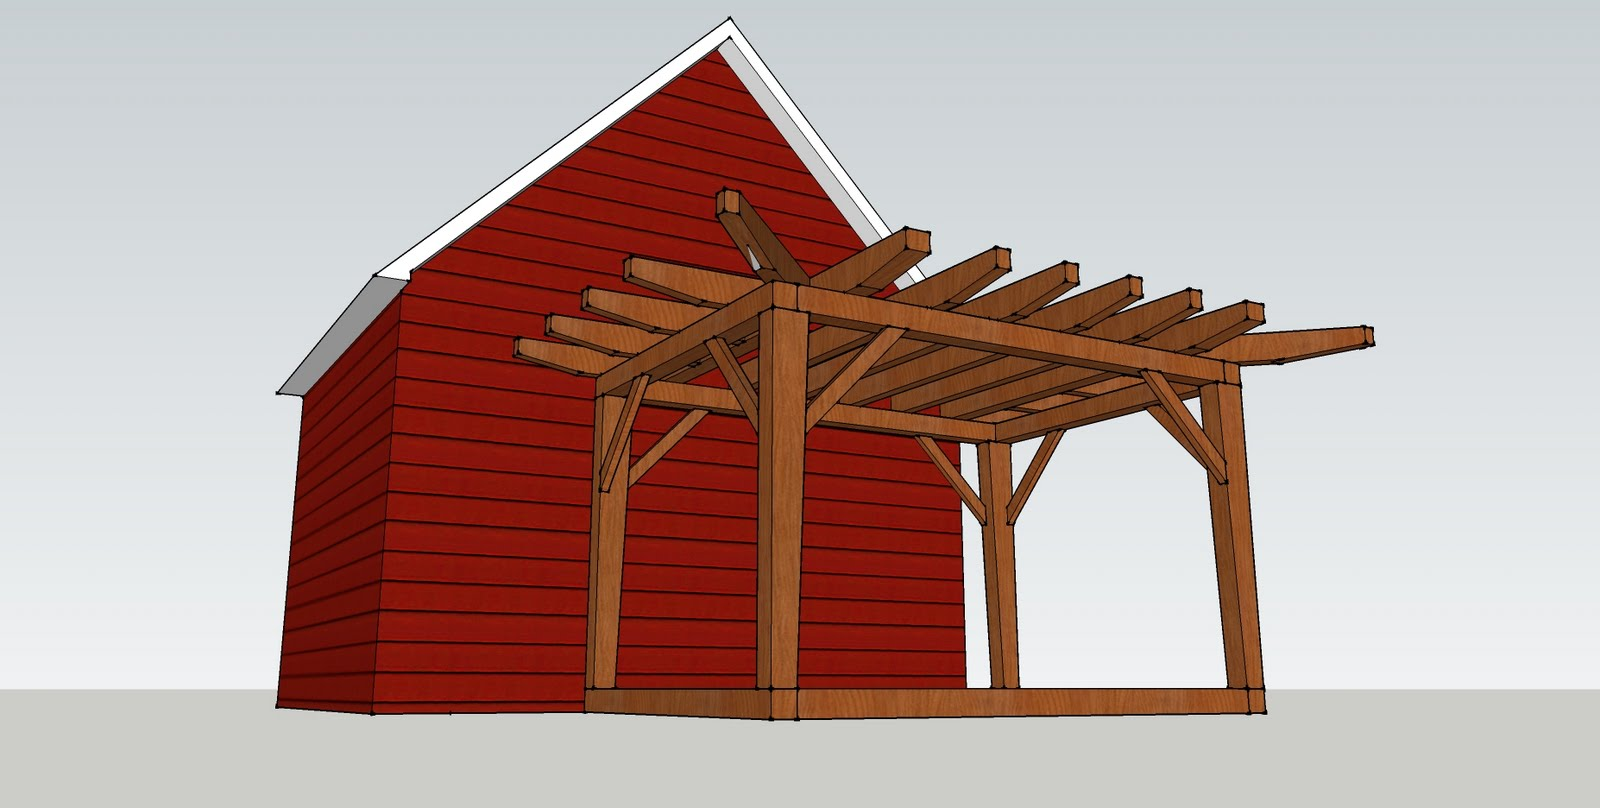 Detail of the frame and offset from the house at Fowler Rd in Plainfield.